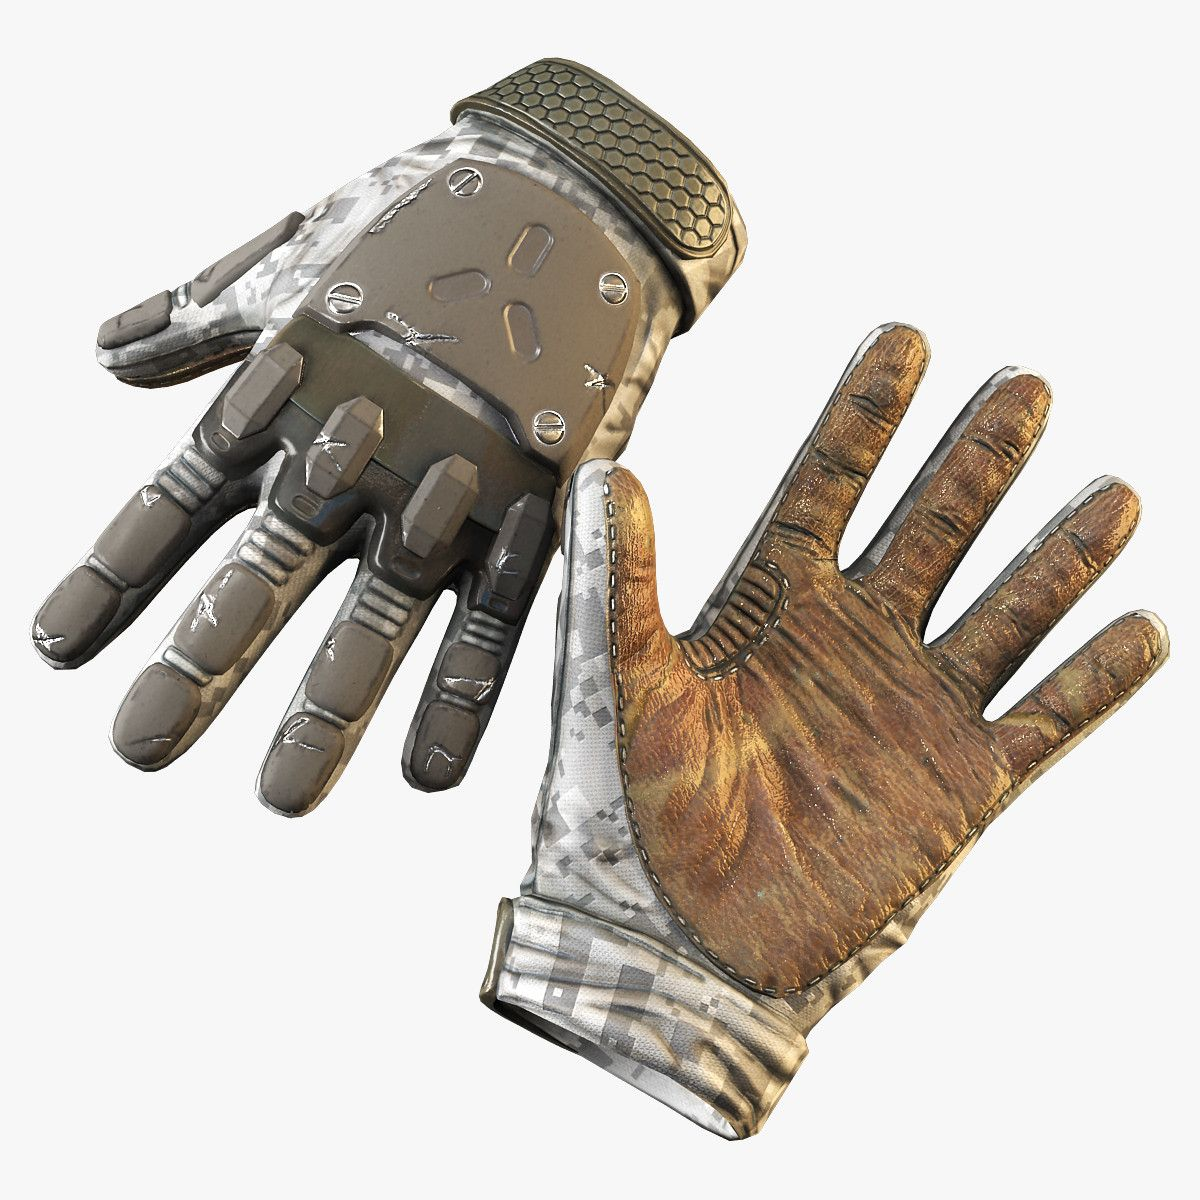 space suit glove hardware - photo #32